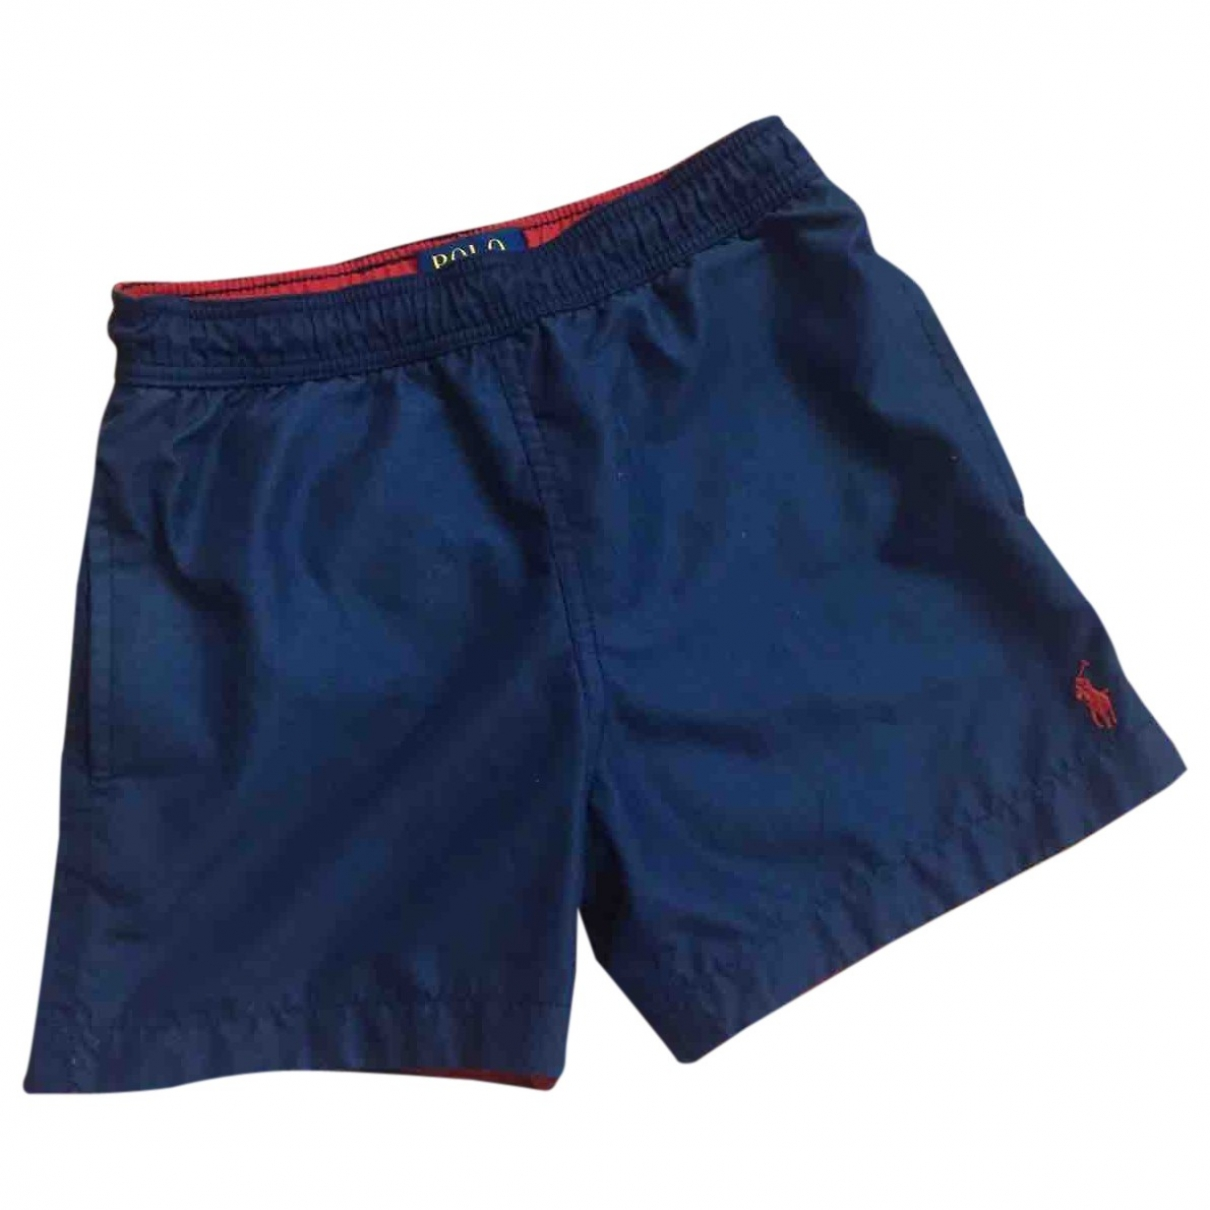 Polo Ralph Lauren \N Blue Shorts for Kids 6 years - until 45 inches UK